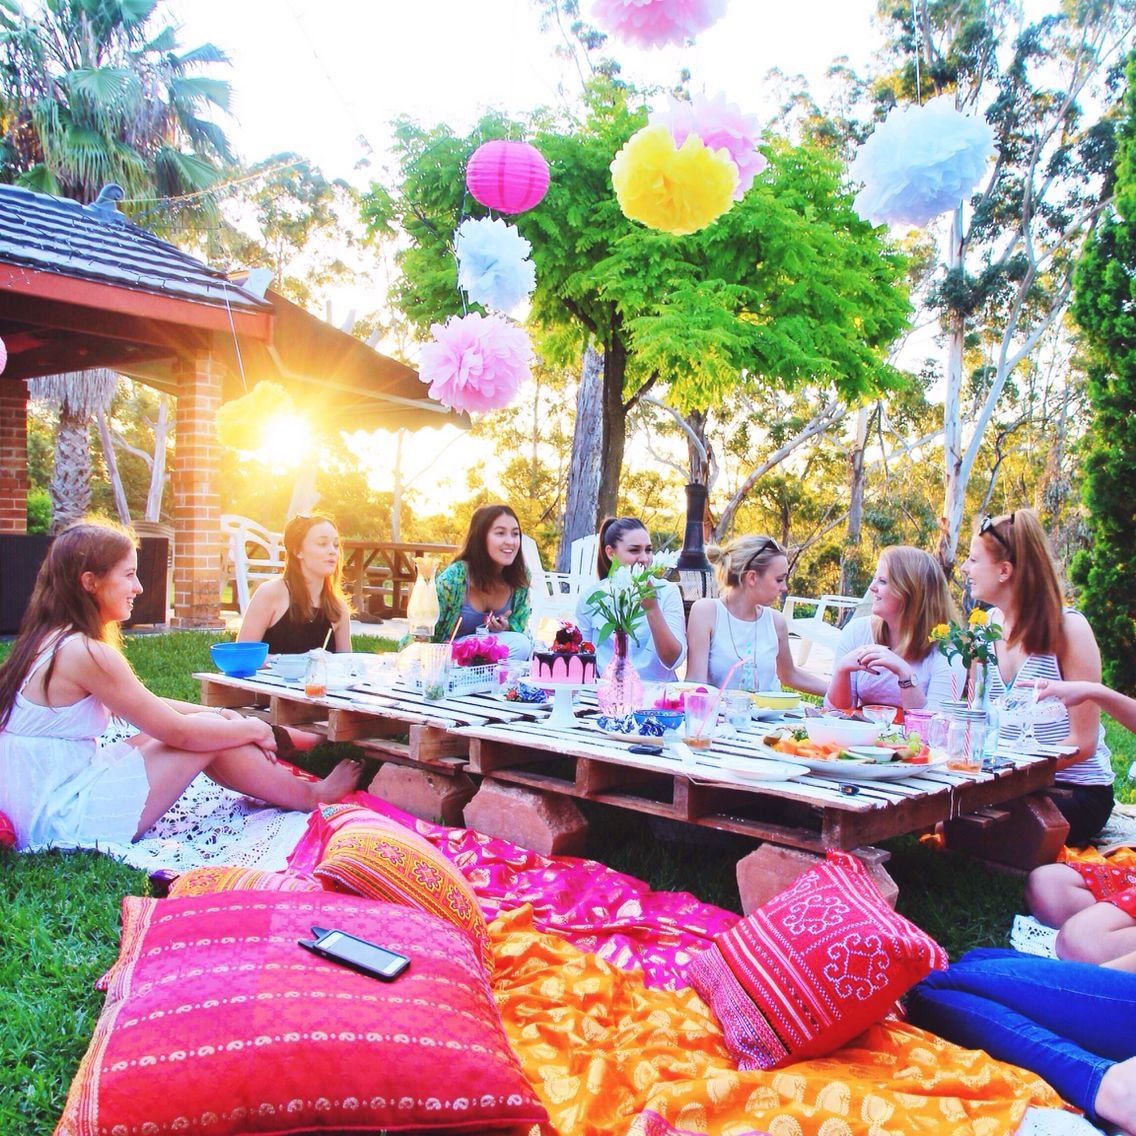 my take on an outdoor birthday picnic outdoor dinner pinterest